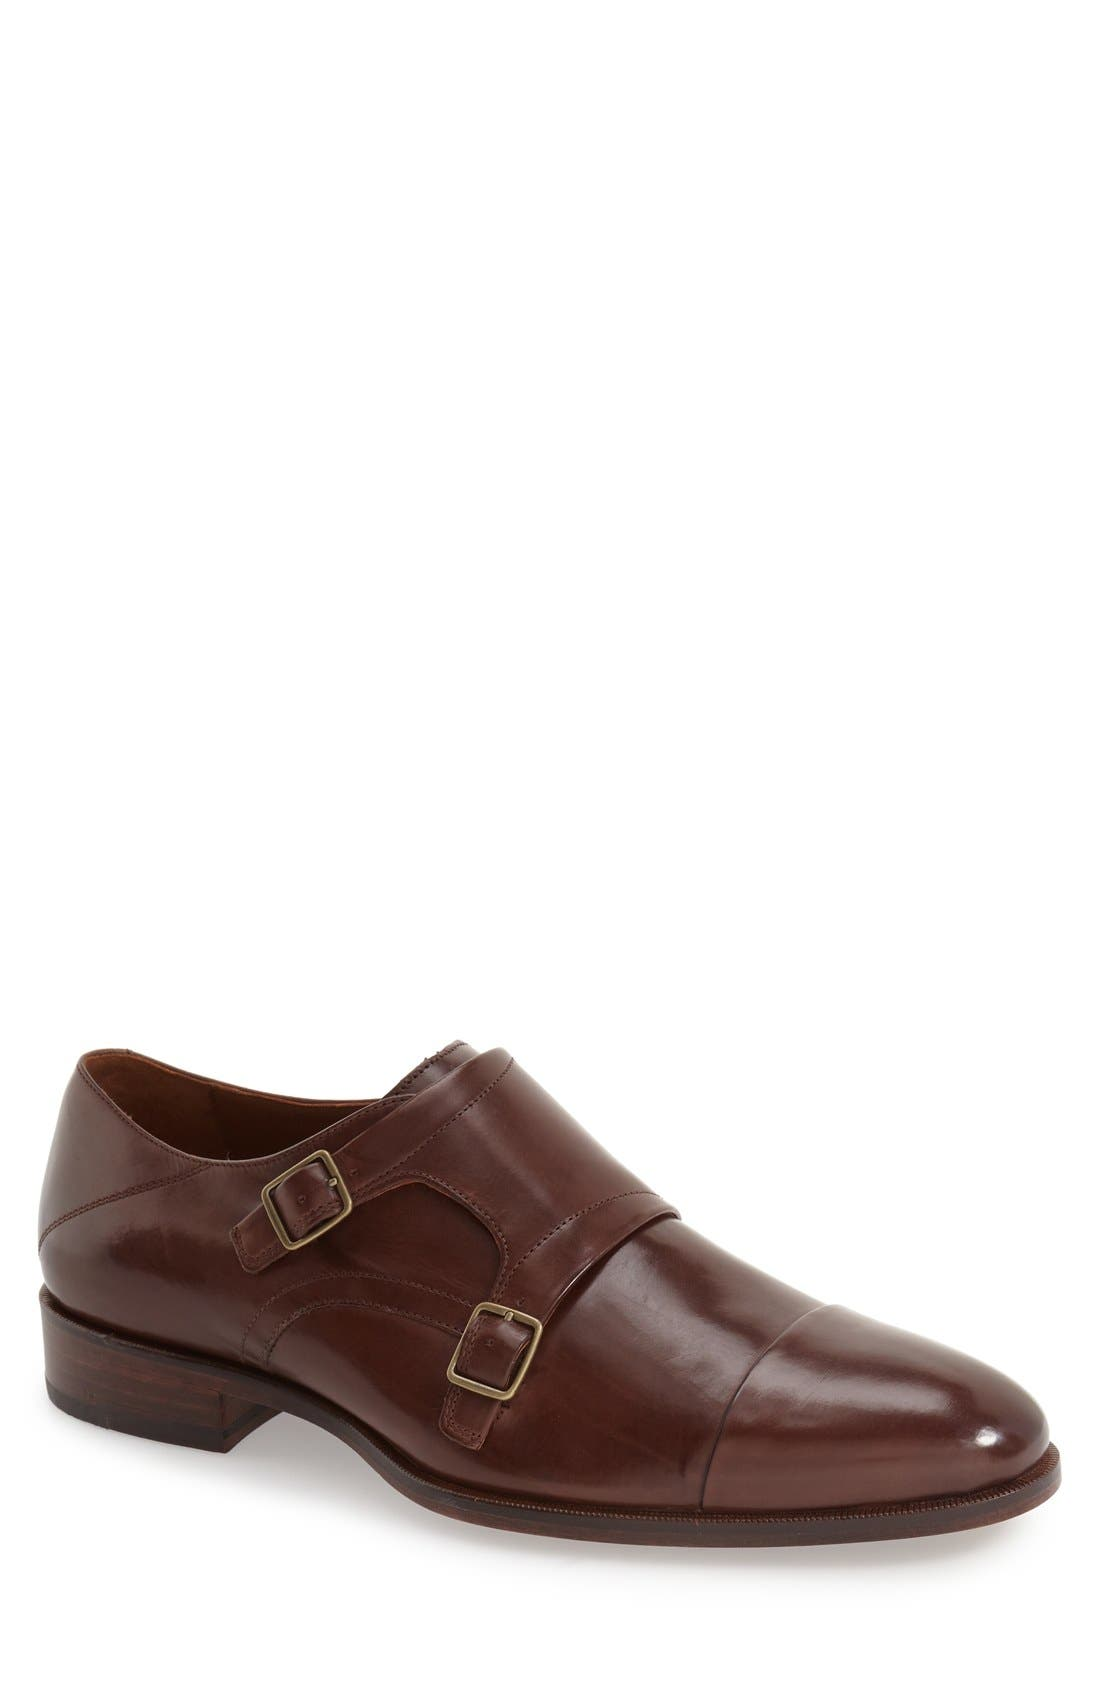 Main Image - Johnston & Murphy 'Nolen' Double Monk Strap Shoe (Men)